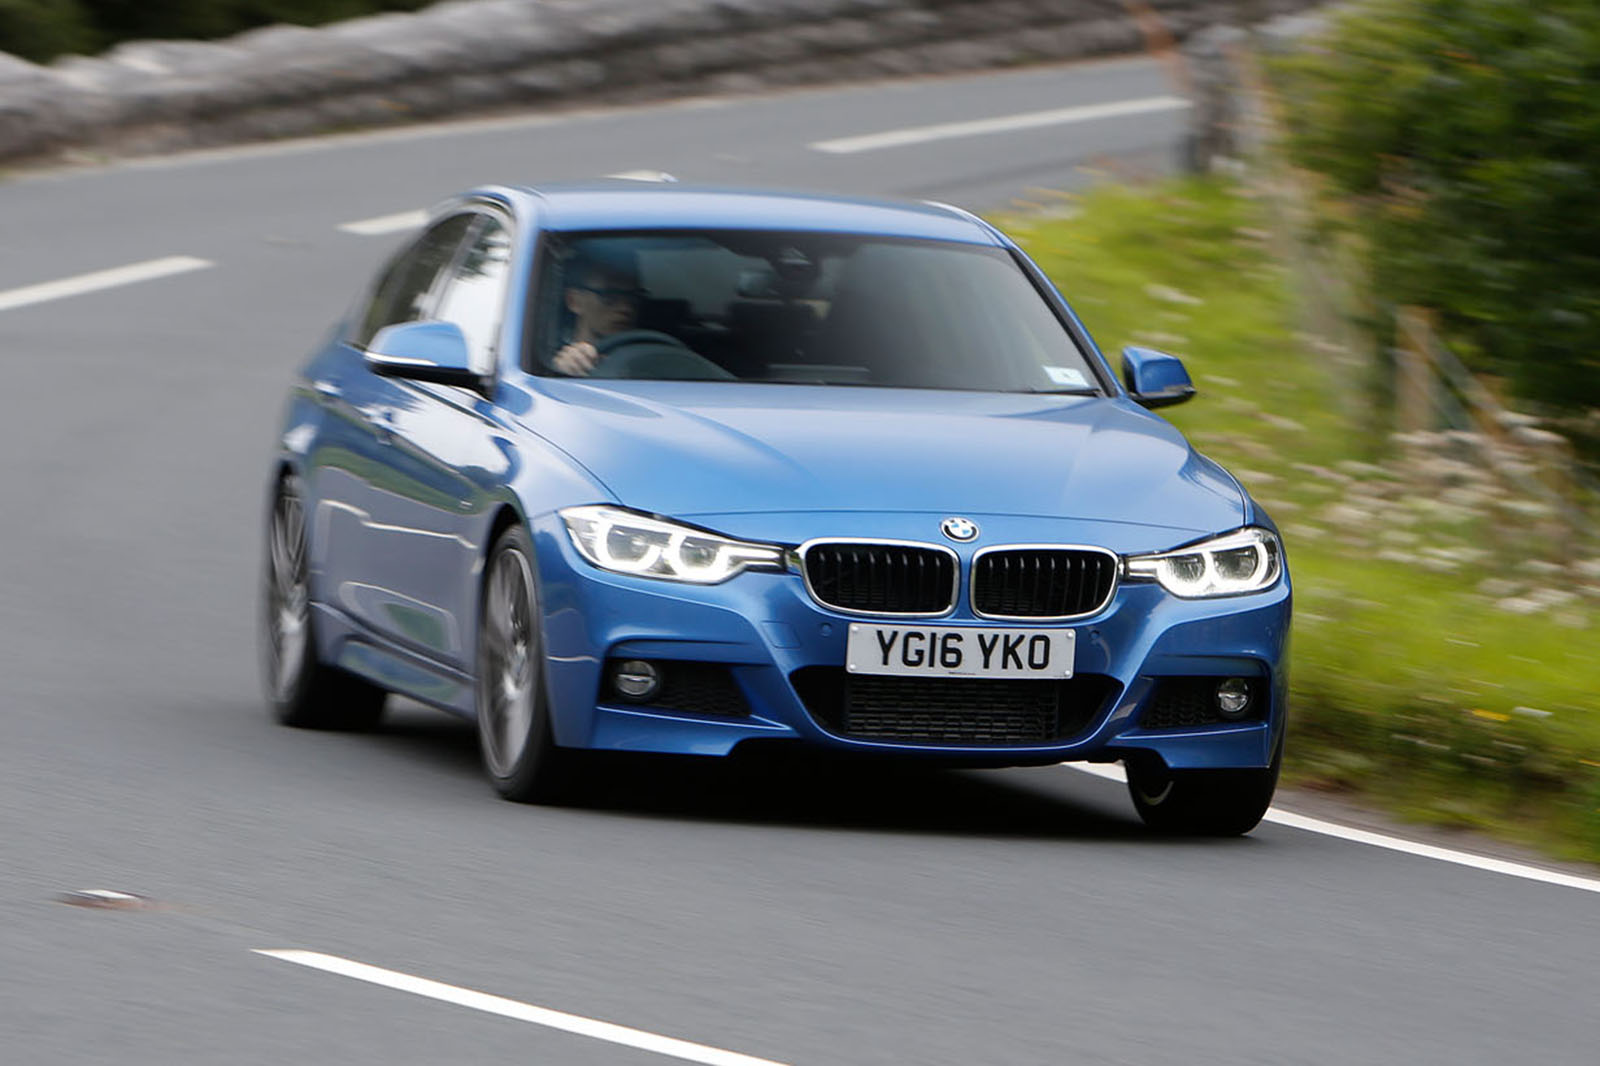 BMW 320d long-term test review: all the car you'd ever need? | Autocar